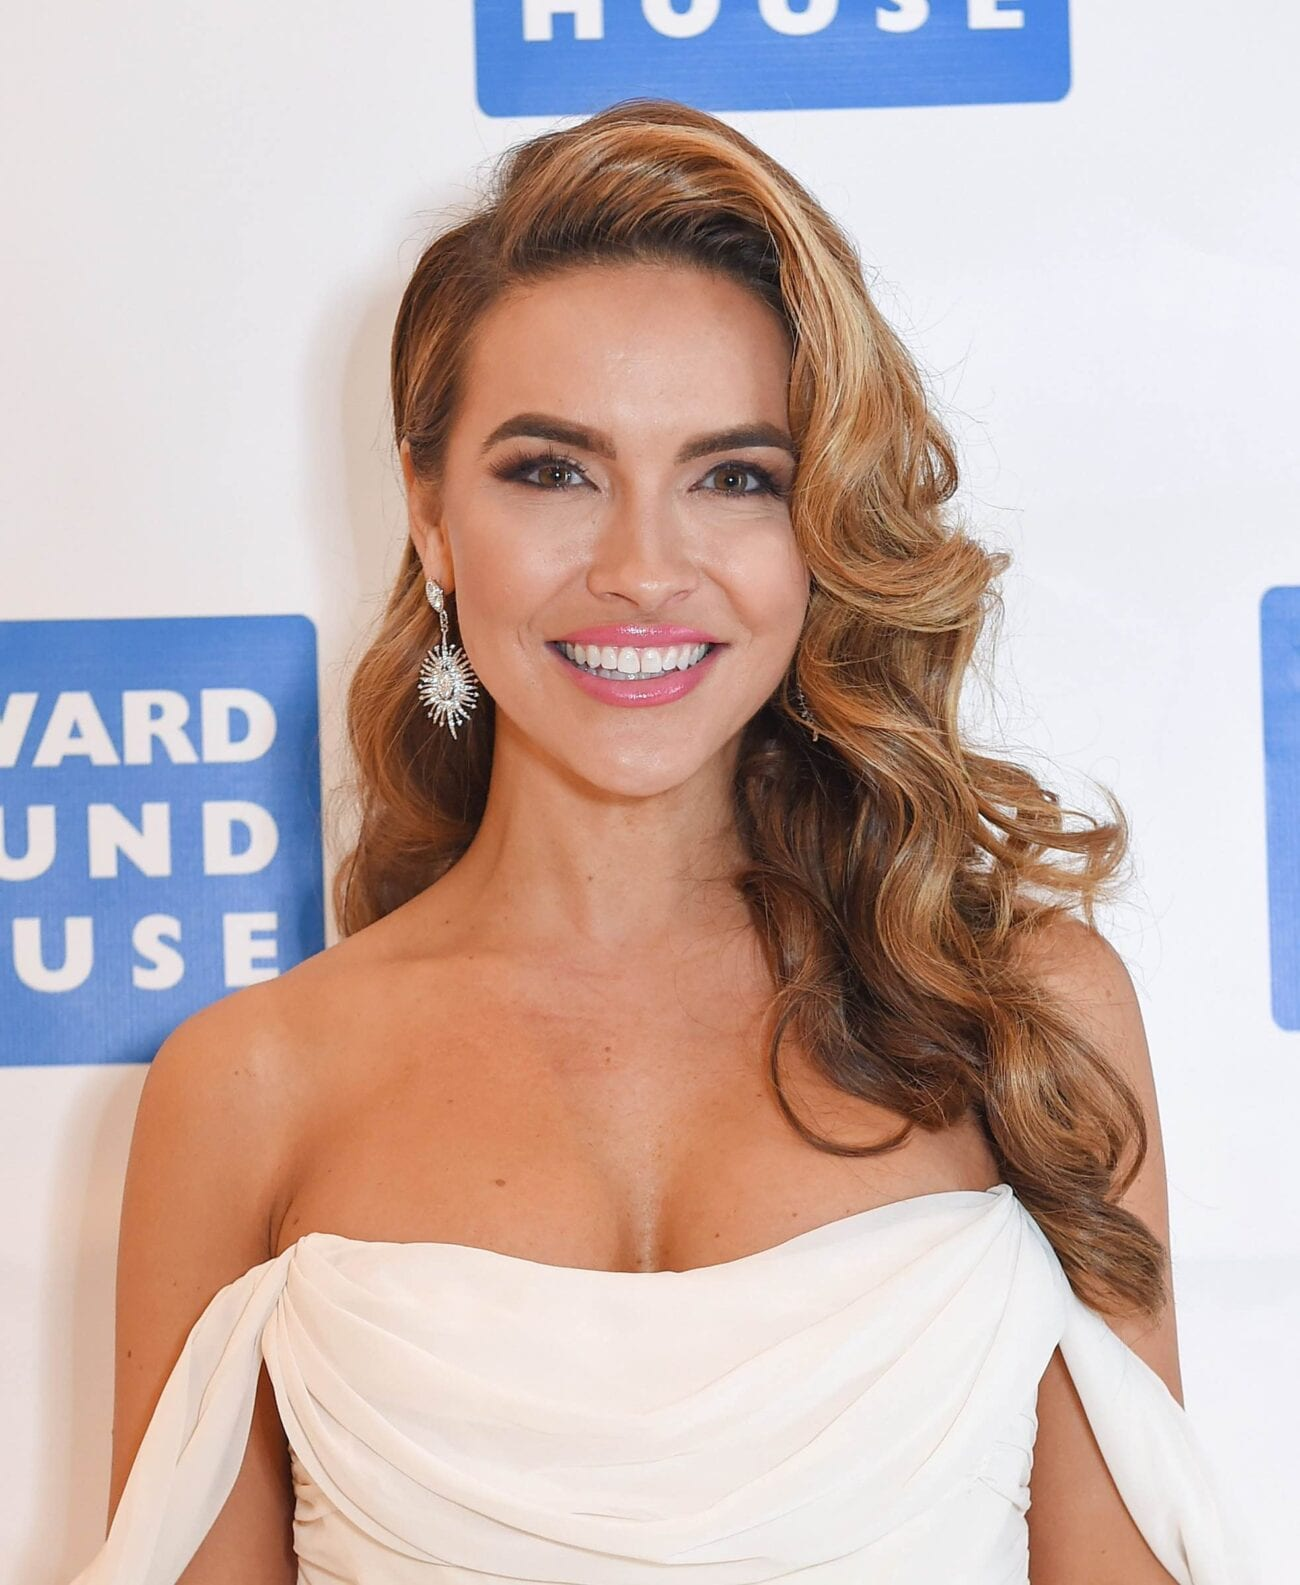 Did Chrishell Stause find love before Justin Hartley? Delve into her relationships before she married Hartley.